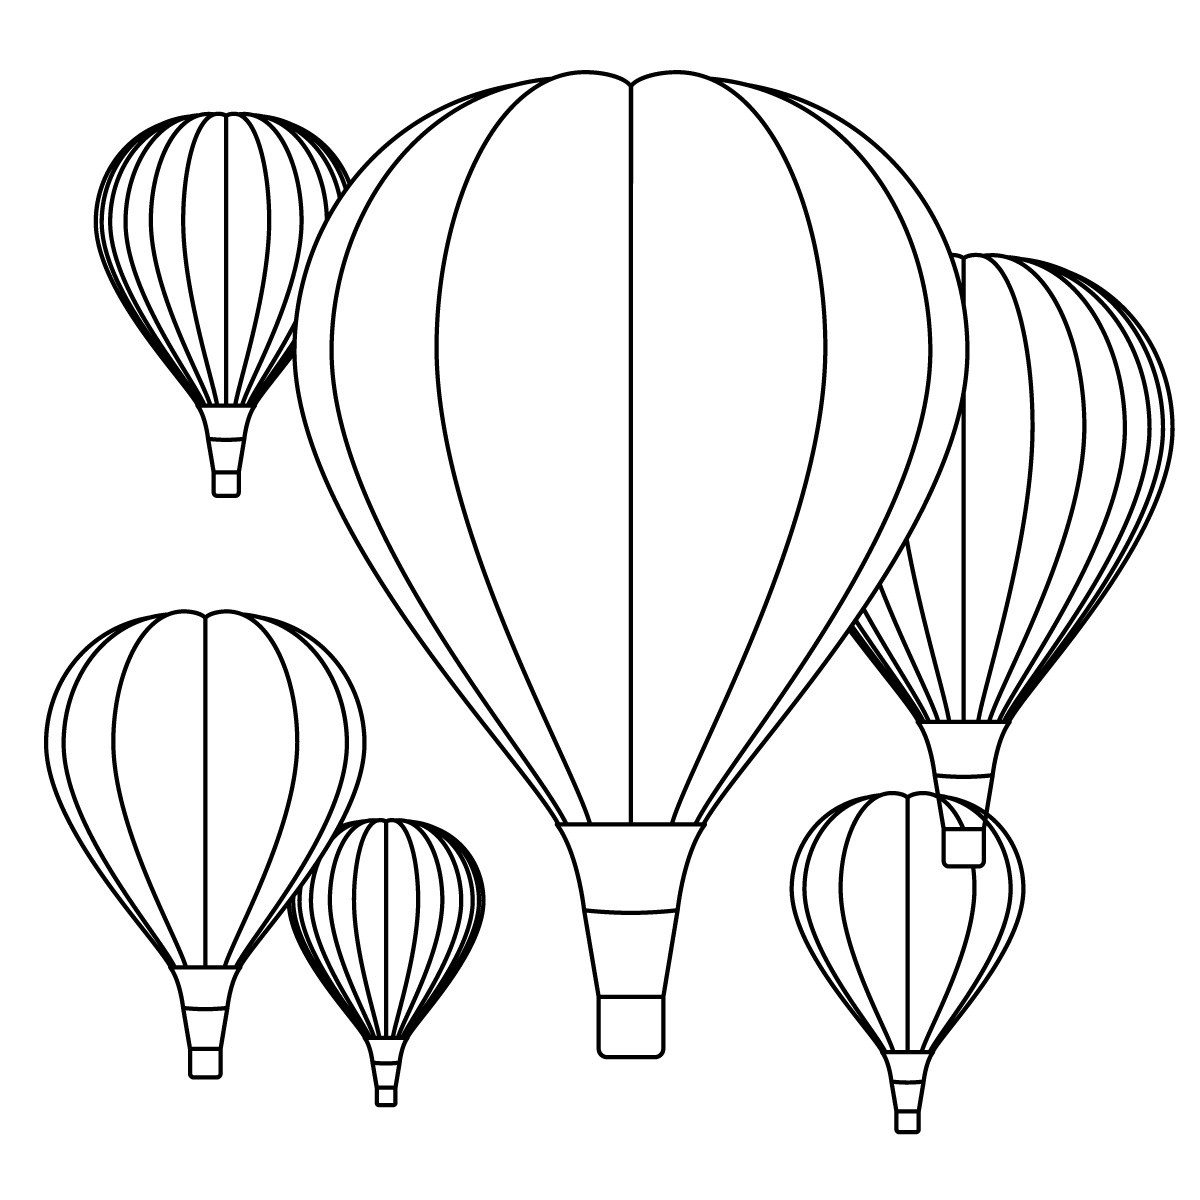 Hot Air Balloon Coloring Pages Download Of Hot Air Balloon Coloring Page Collection